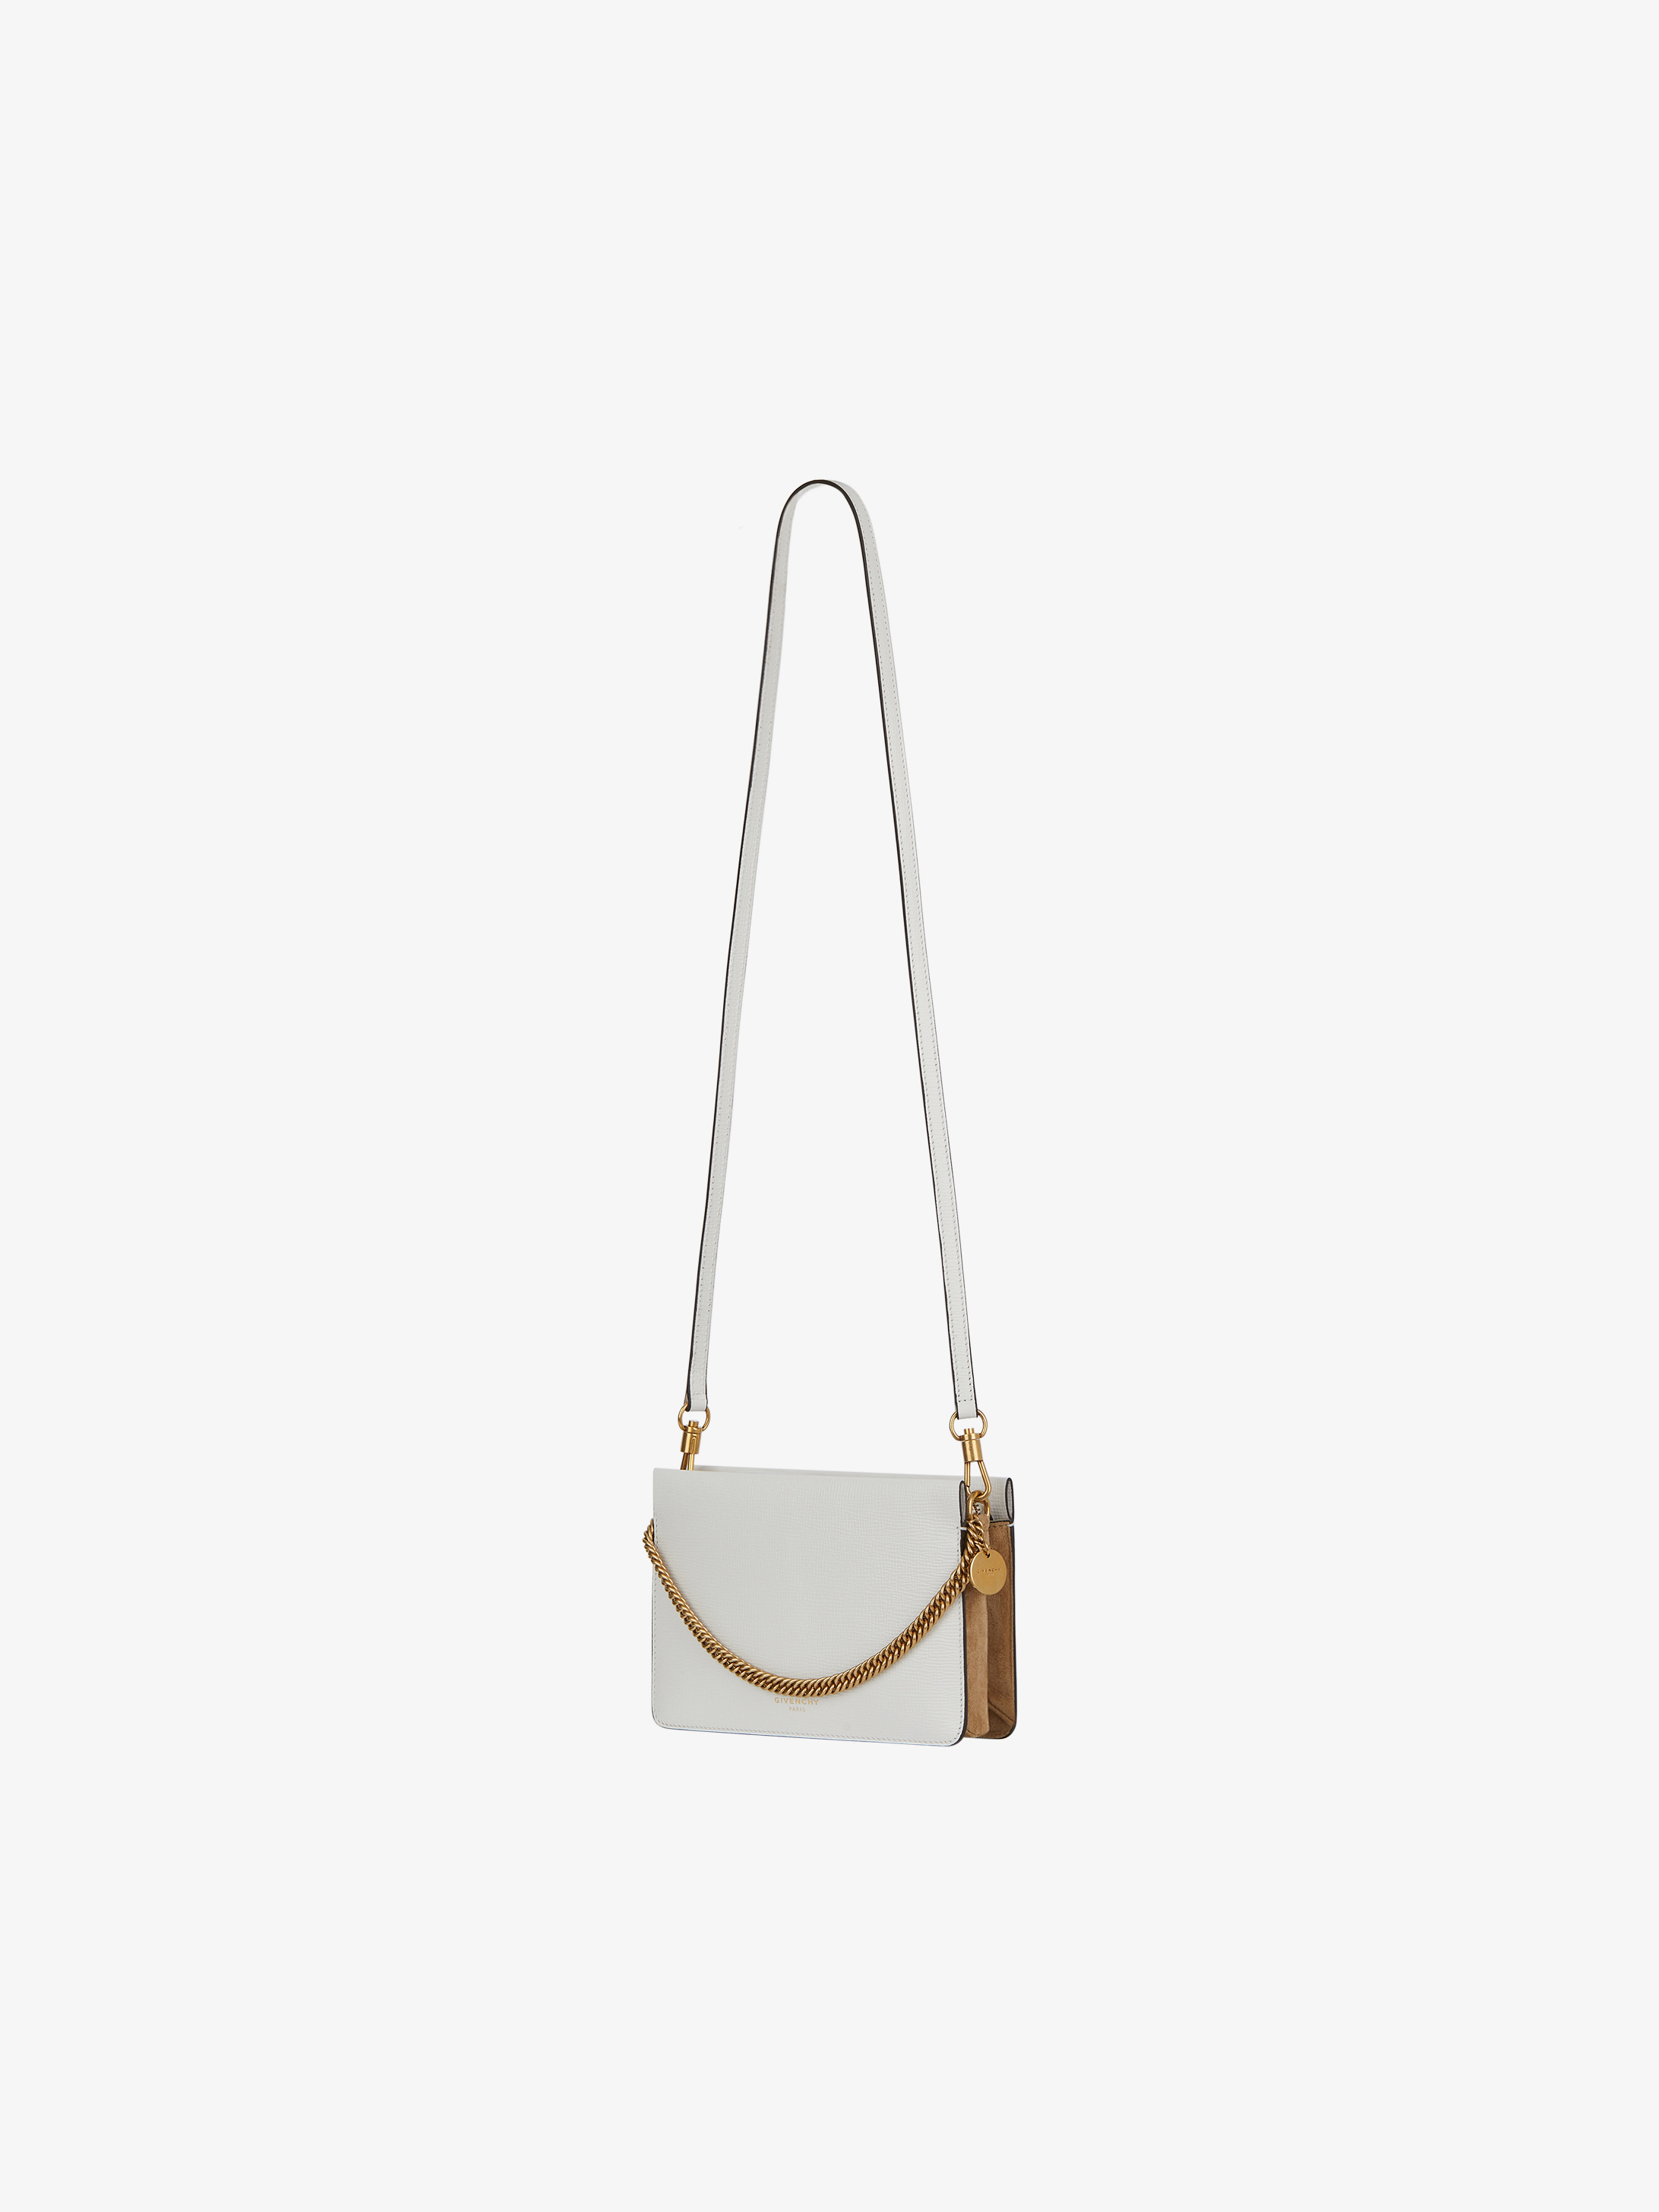 Two-tone Cross3 bag in leather and suede